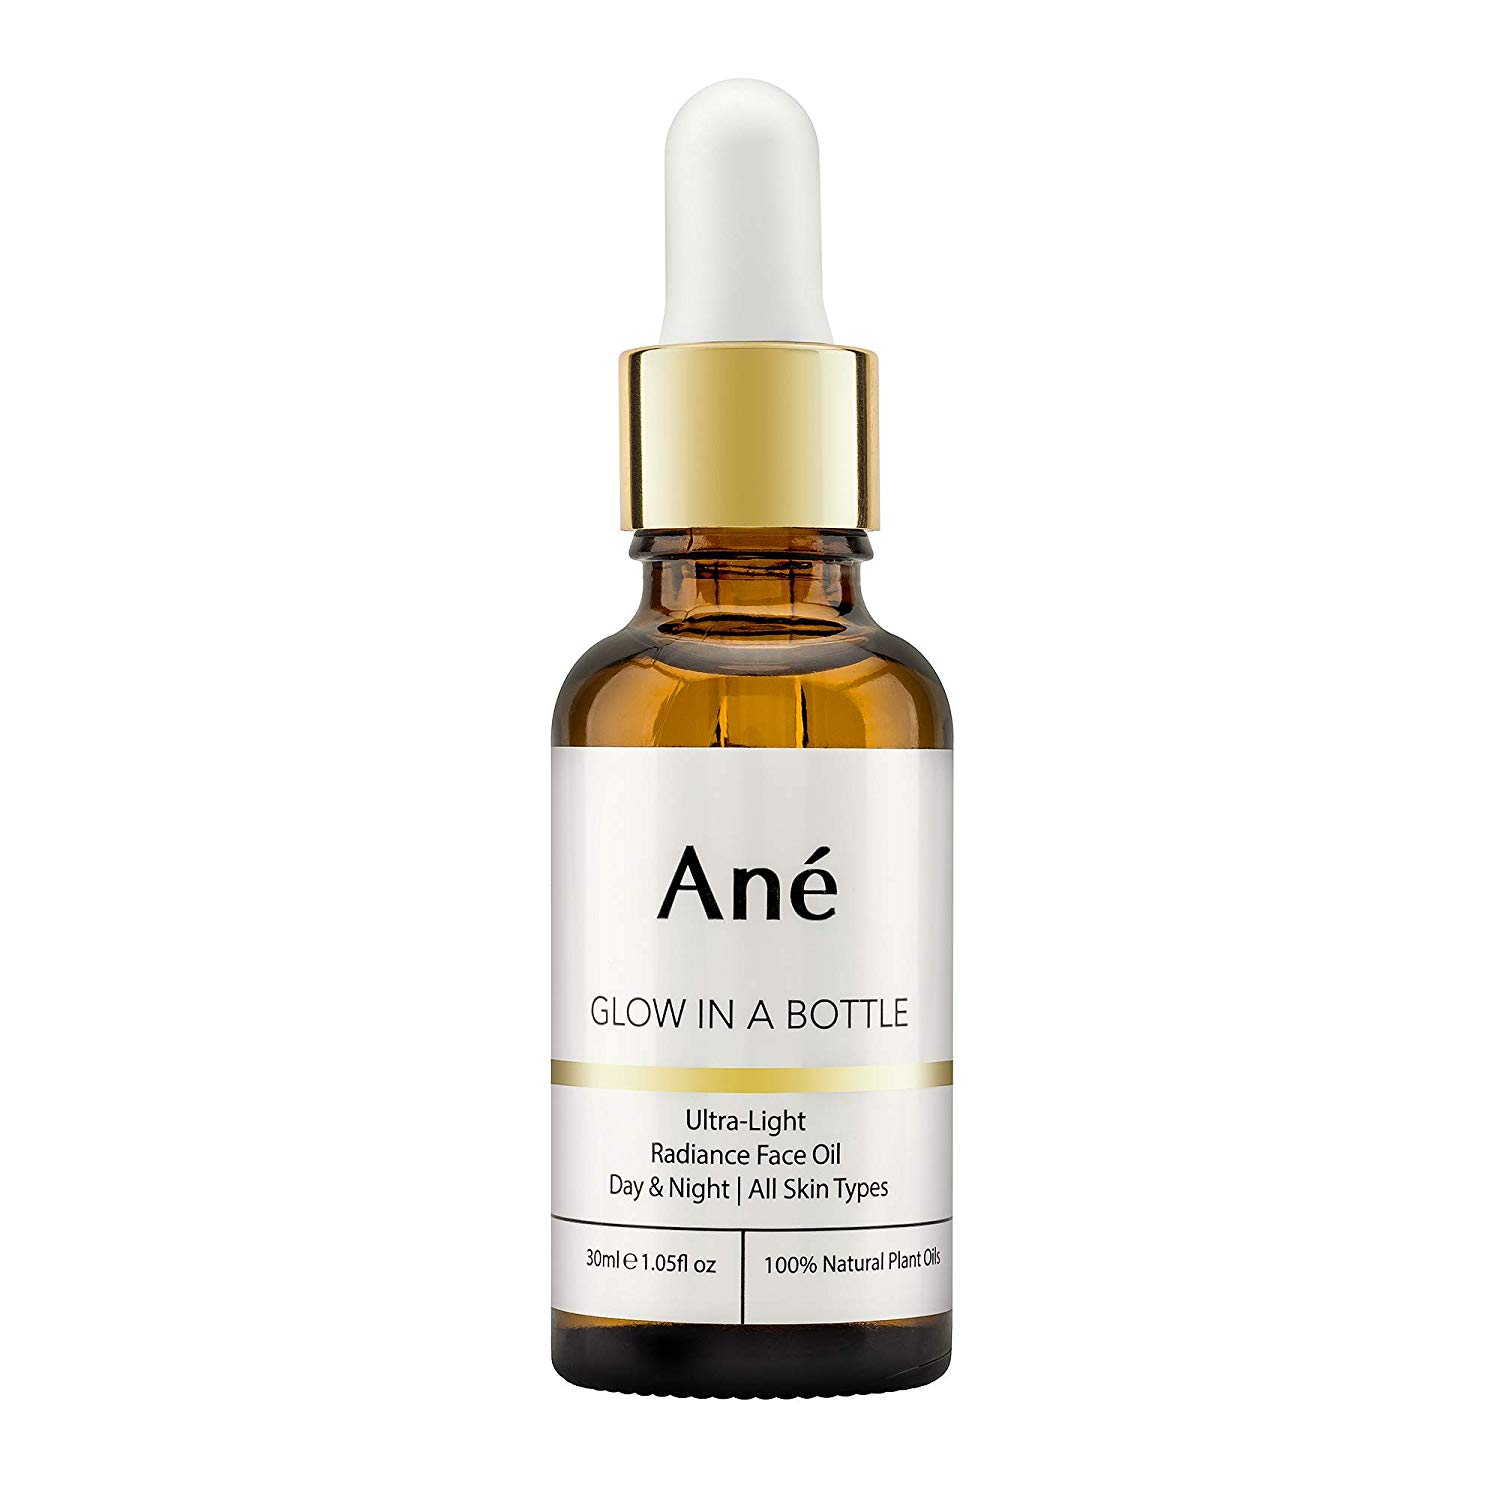 Ané Glow in a Bottle Anti-Aging Facial Oil